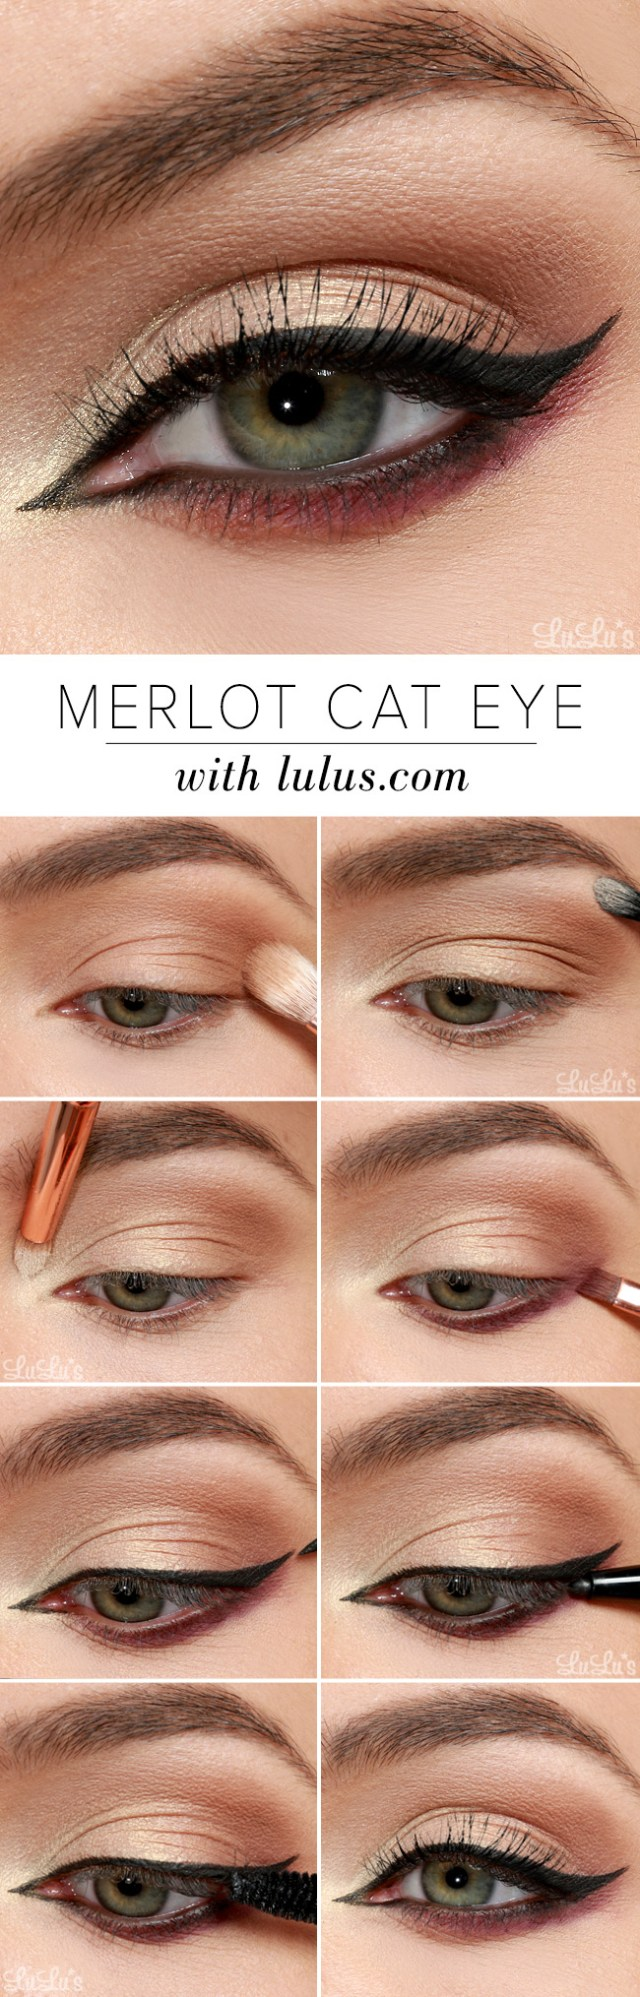 Halloween Cat Eye Makeup Lulus How To Merlot Cat Eye Makeup Tutorial Lulus Fashion Blog